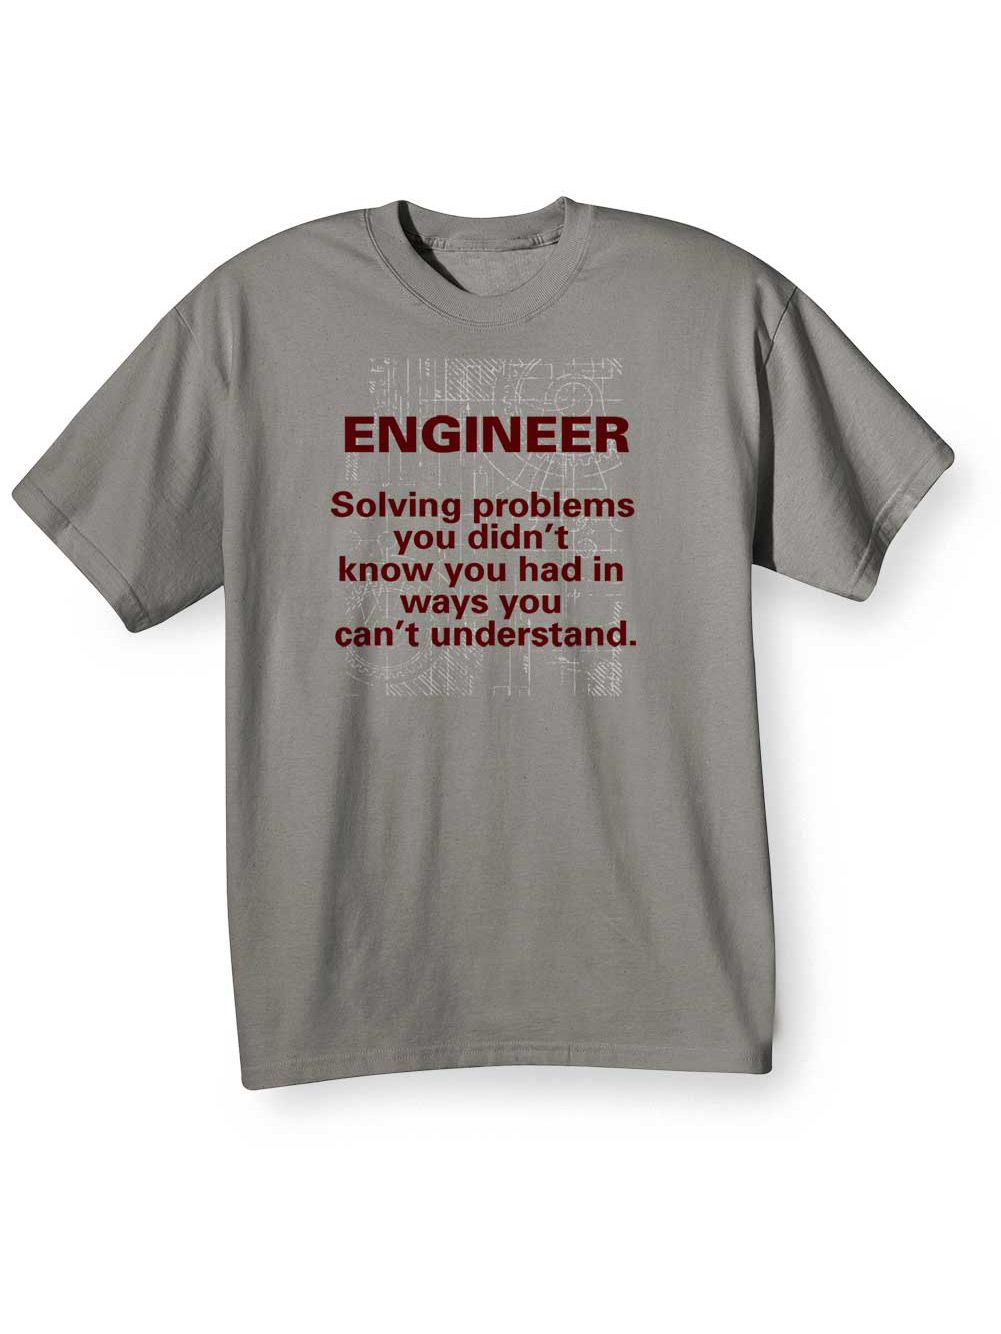 ENGINEER SOLVING PROBLEMS YOU NEVER KNEW YOU HAD FUNNY COTTON T-SHIRT